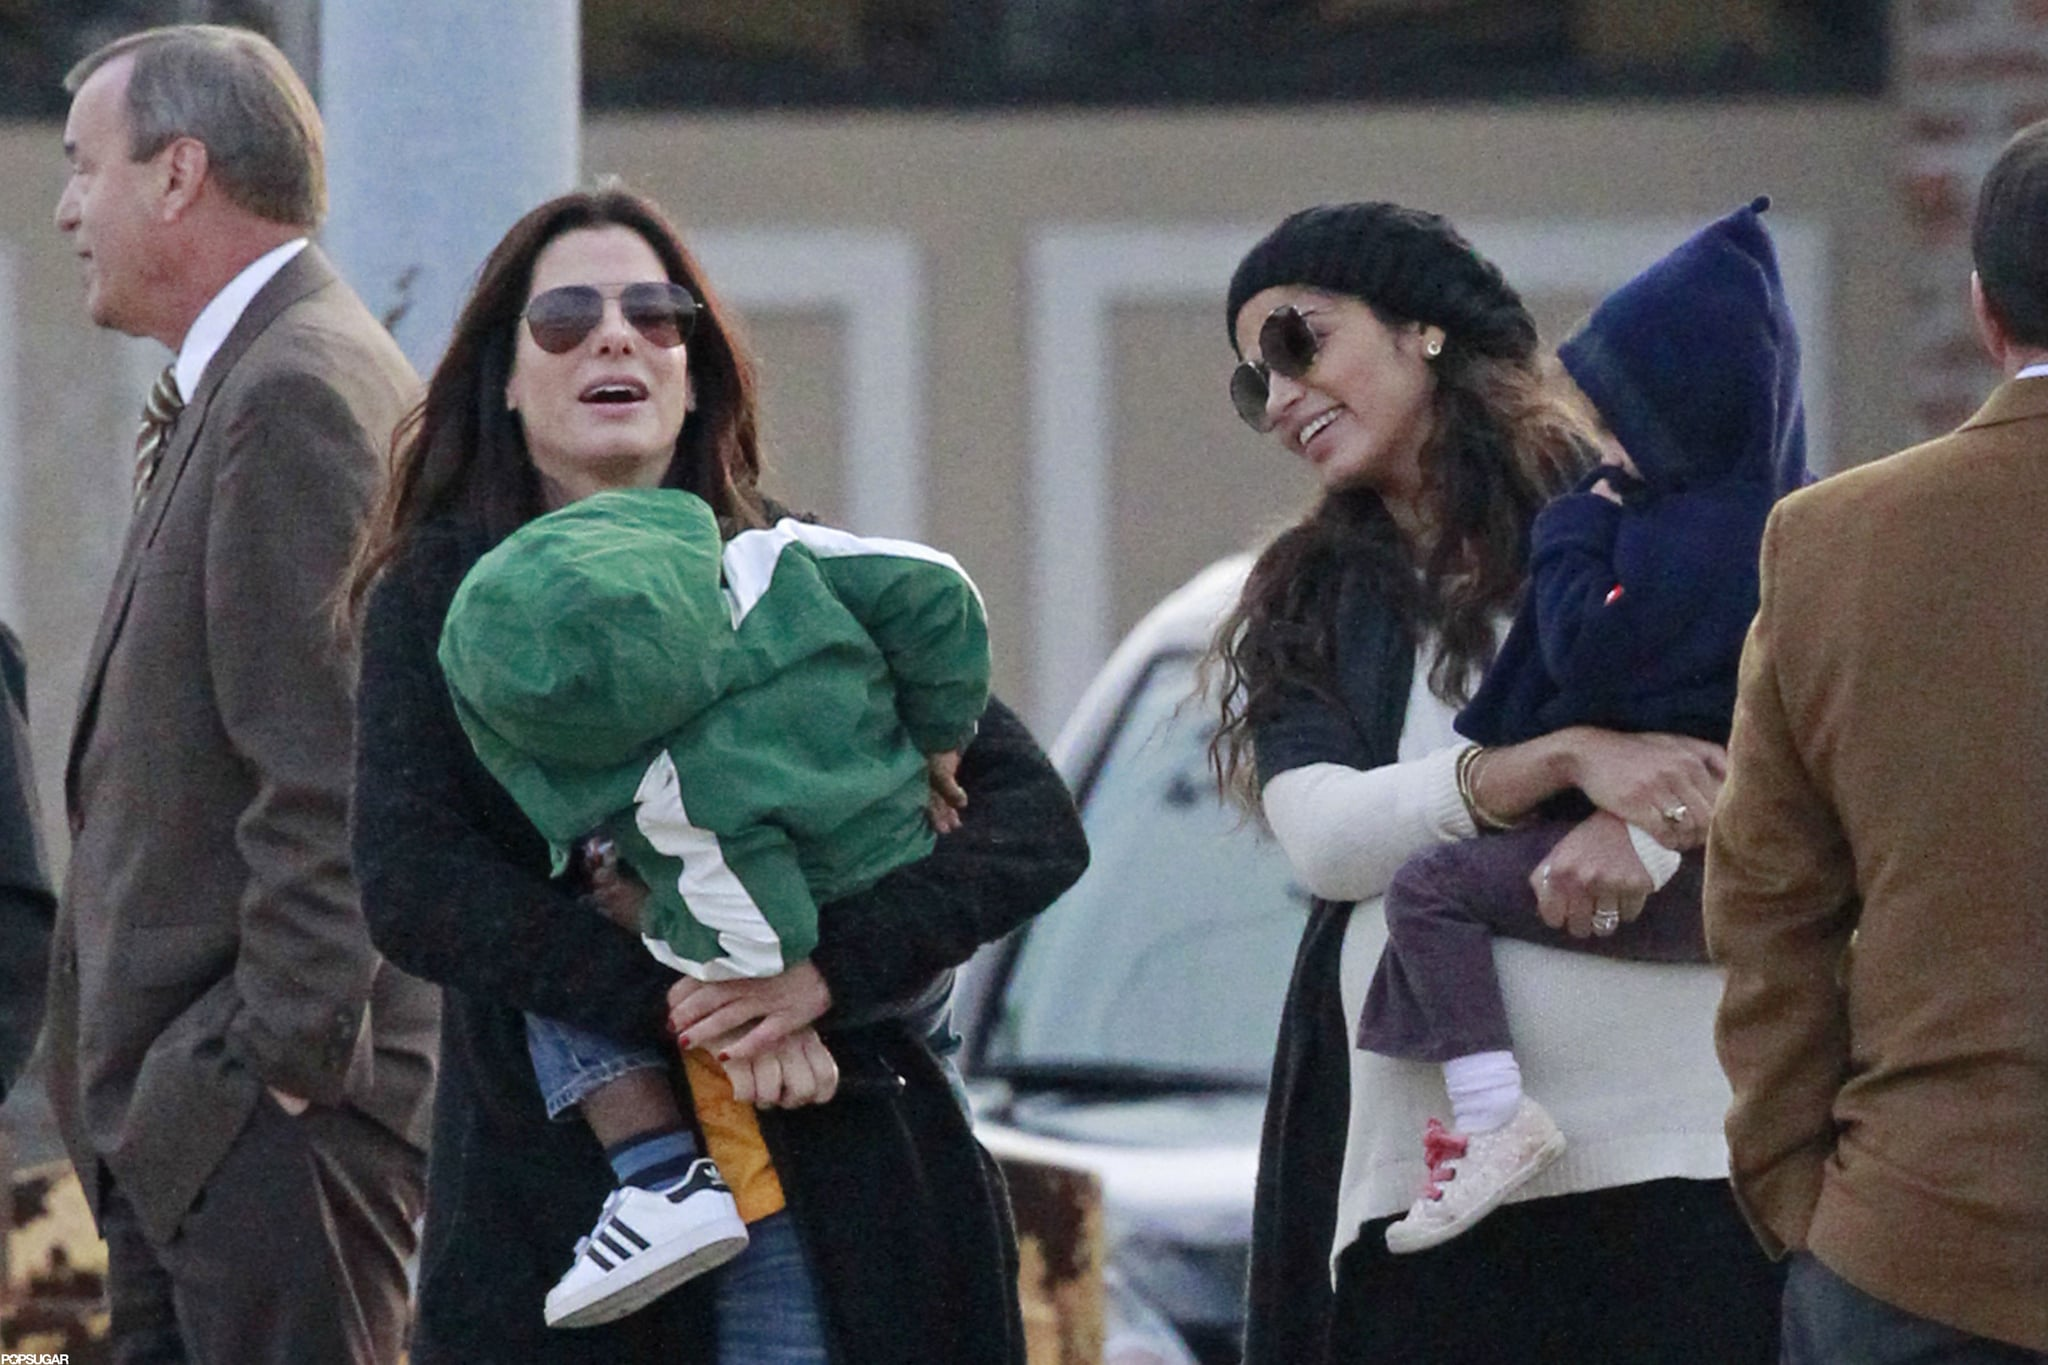 Sandra Bullock and Camila Alves had a laugh together as they held